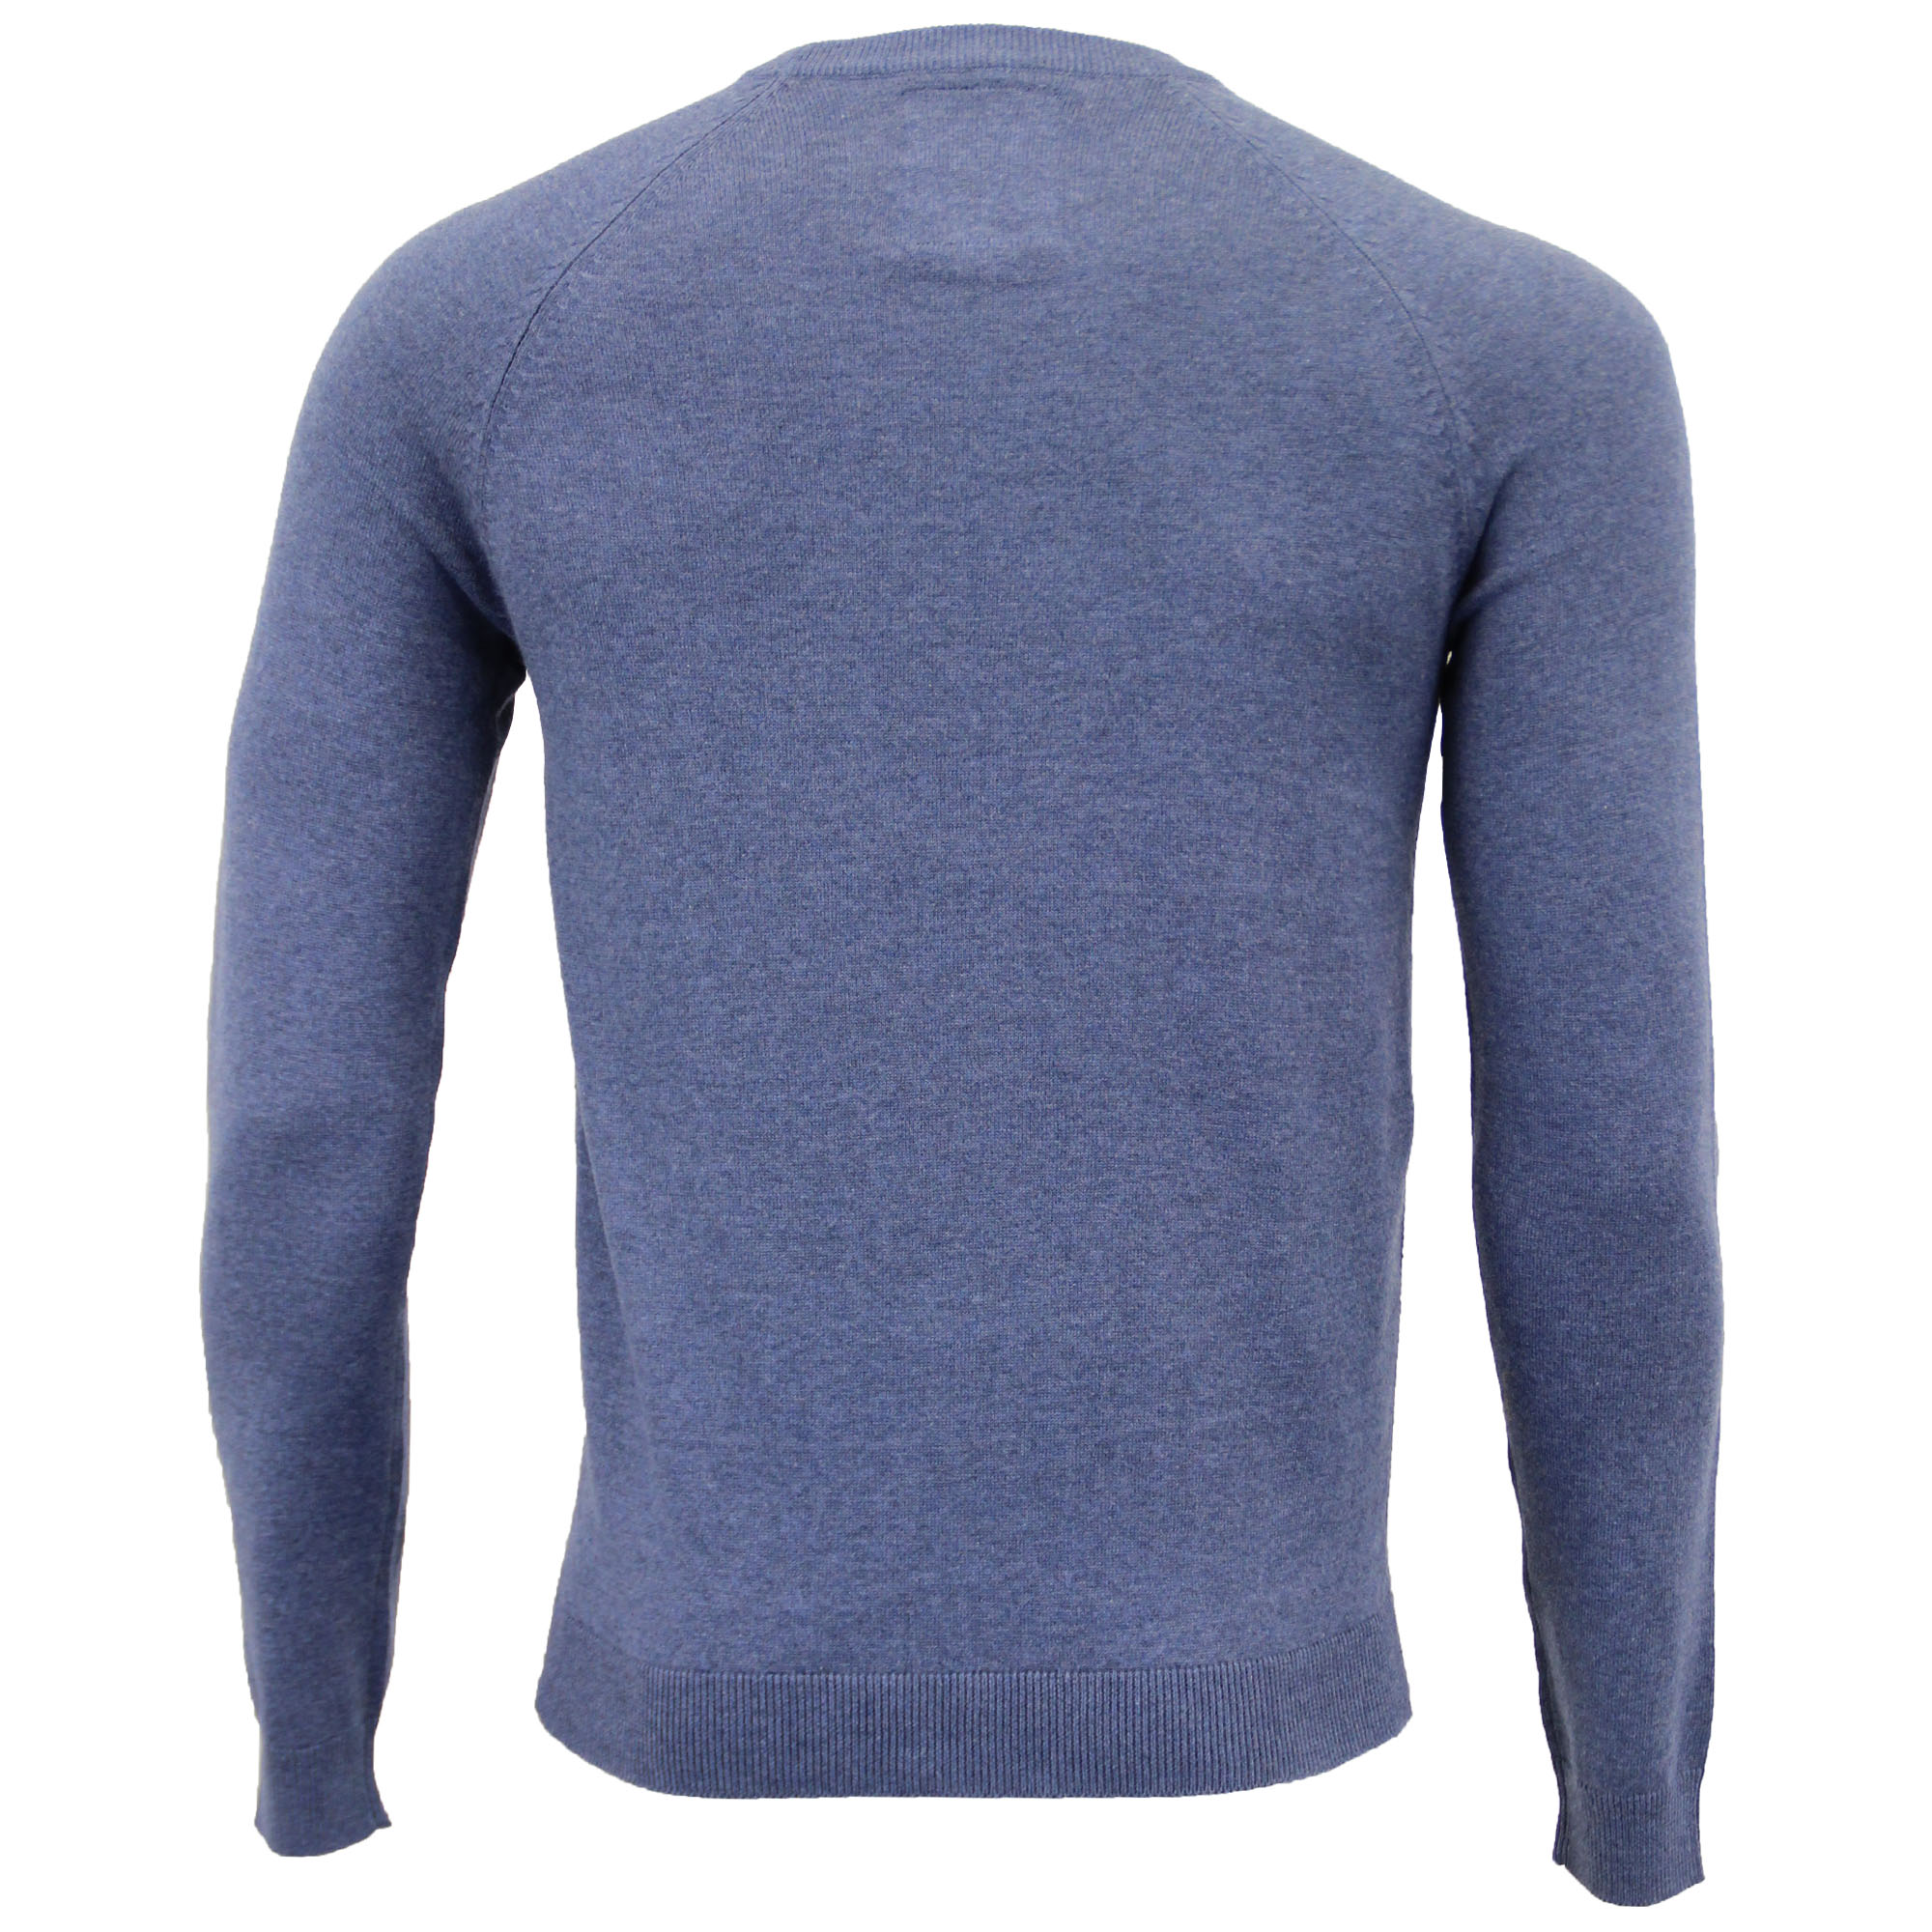 Mens-Jumper-Threadbare-Knitted-Sweater-Pullover-Top-Crew-Neck-Casual-Winter-New thumbnail 6